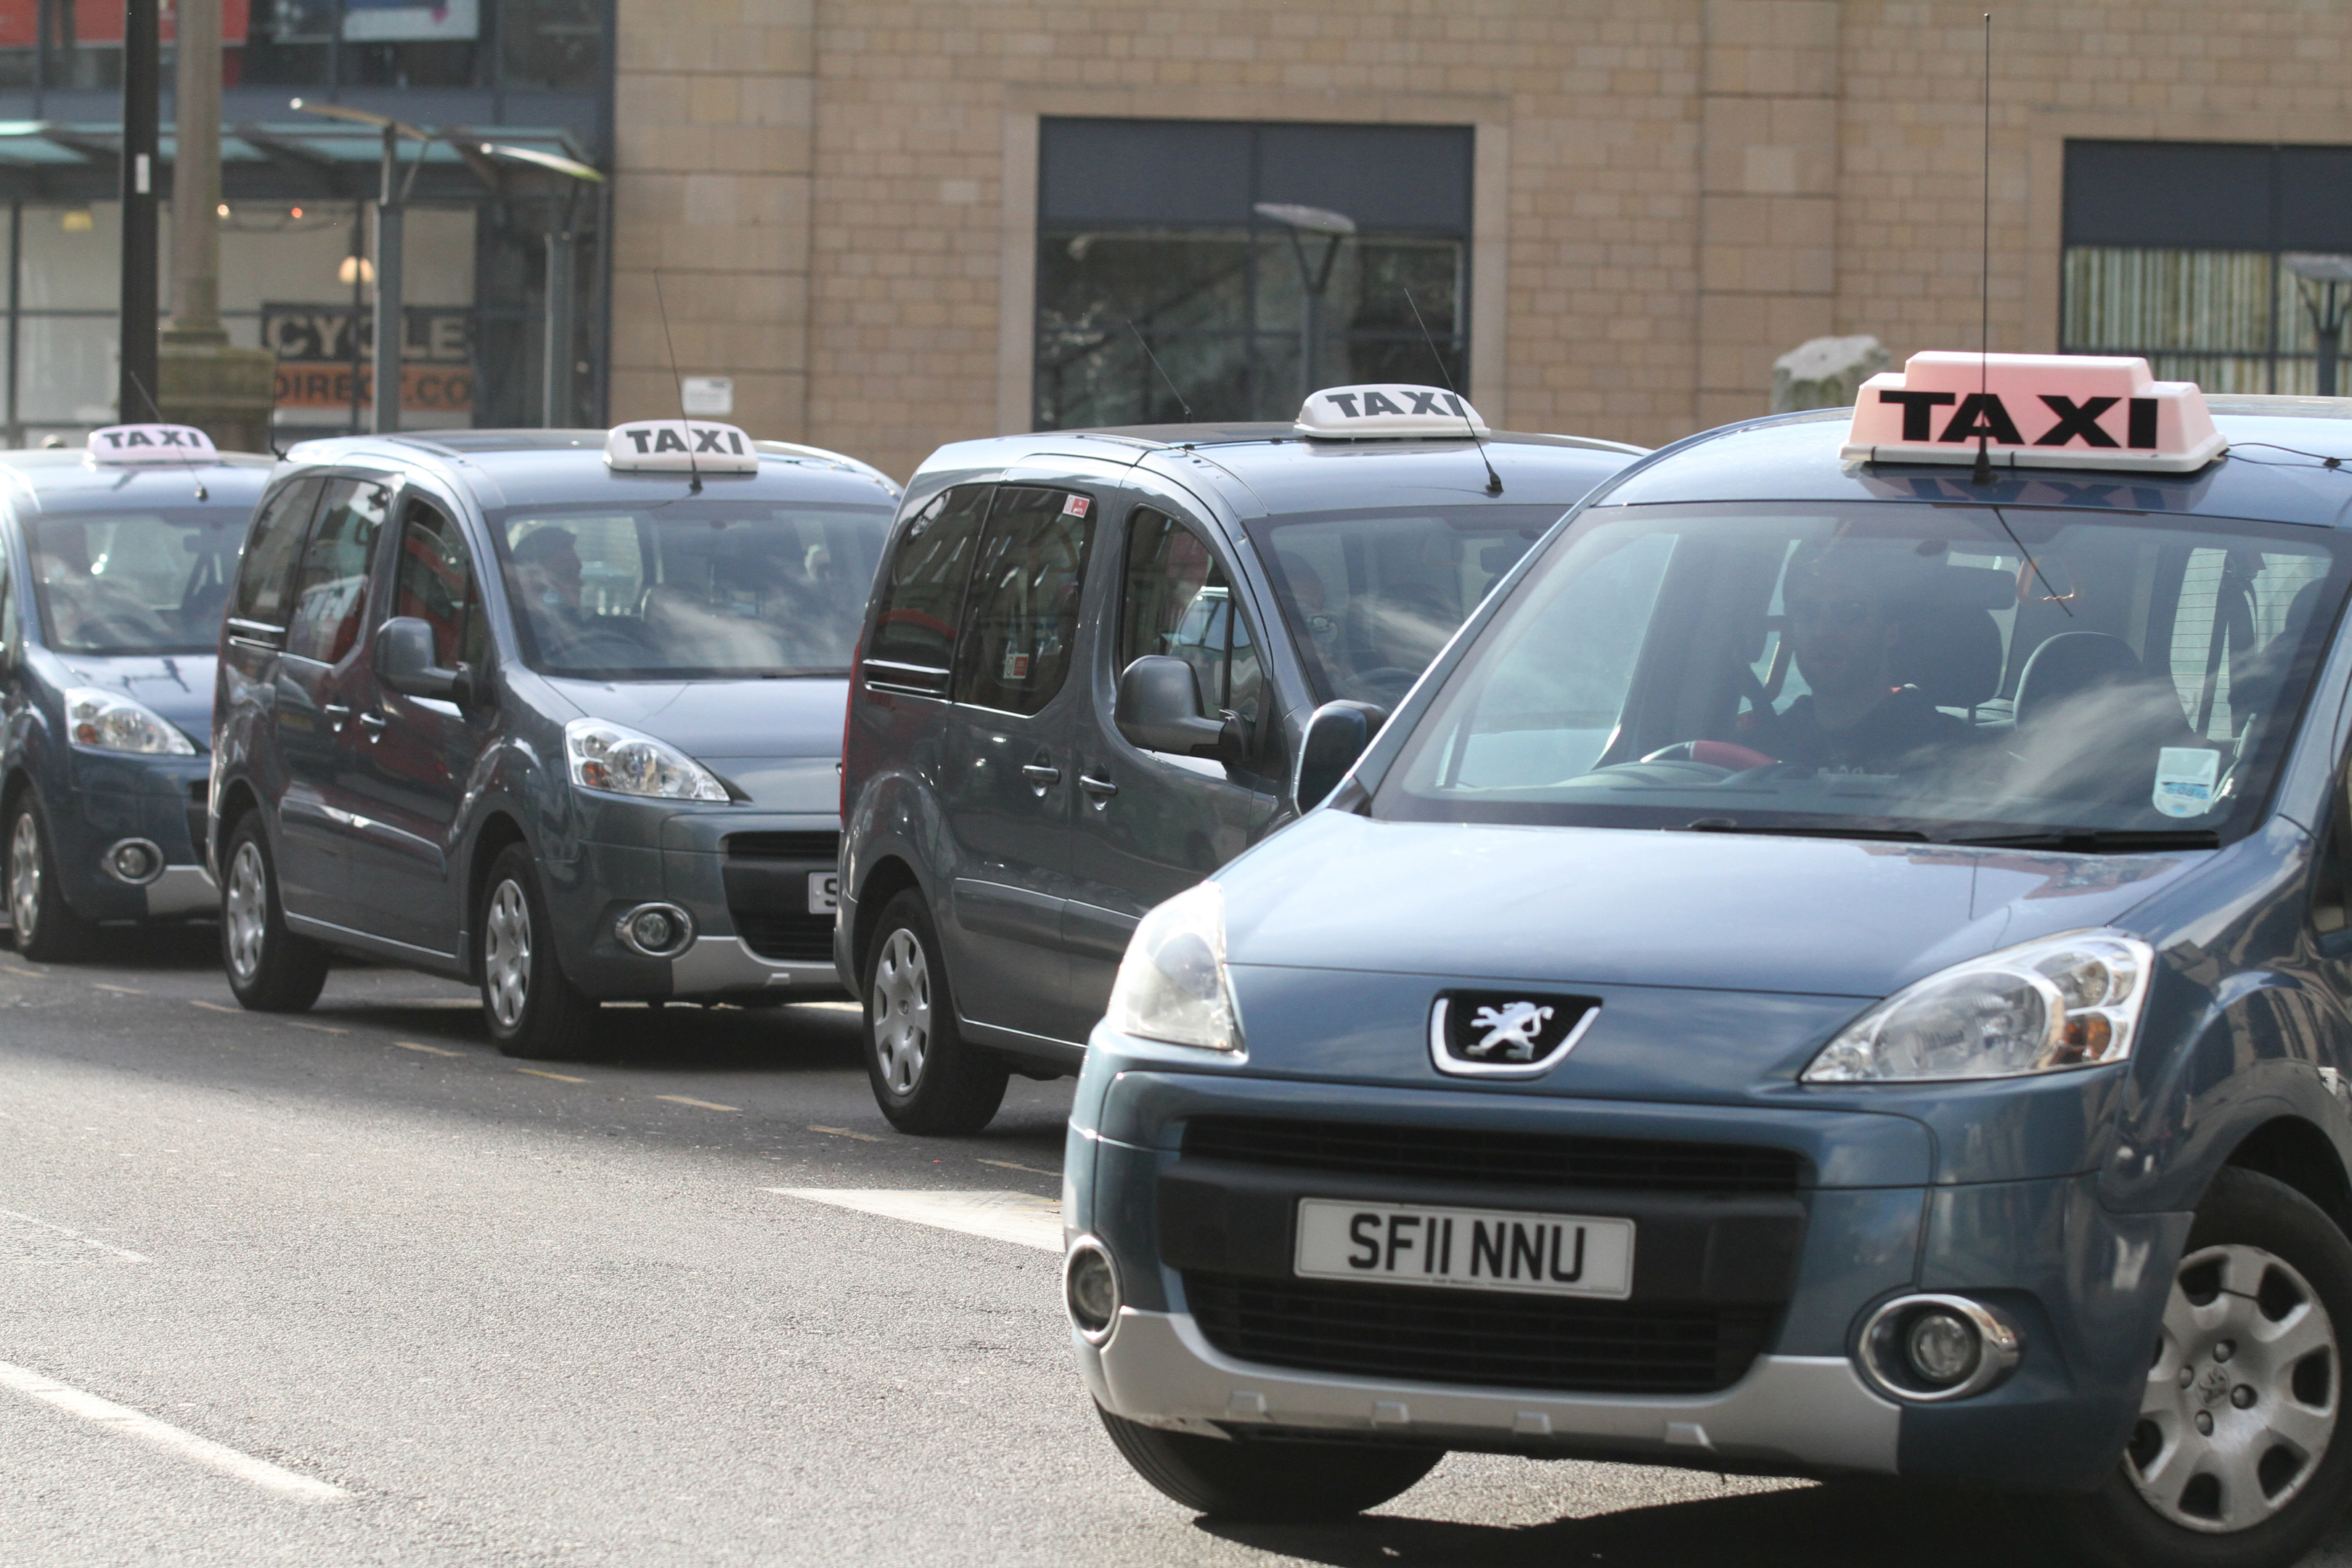 A taxi, similar to the ones pictured, was said to have been attacked on Friday night.